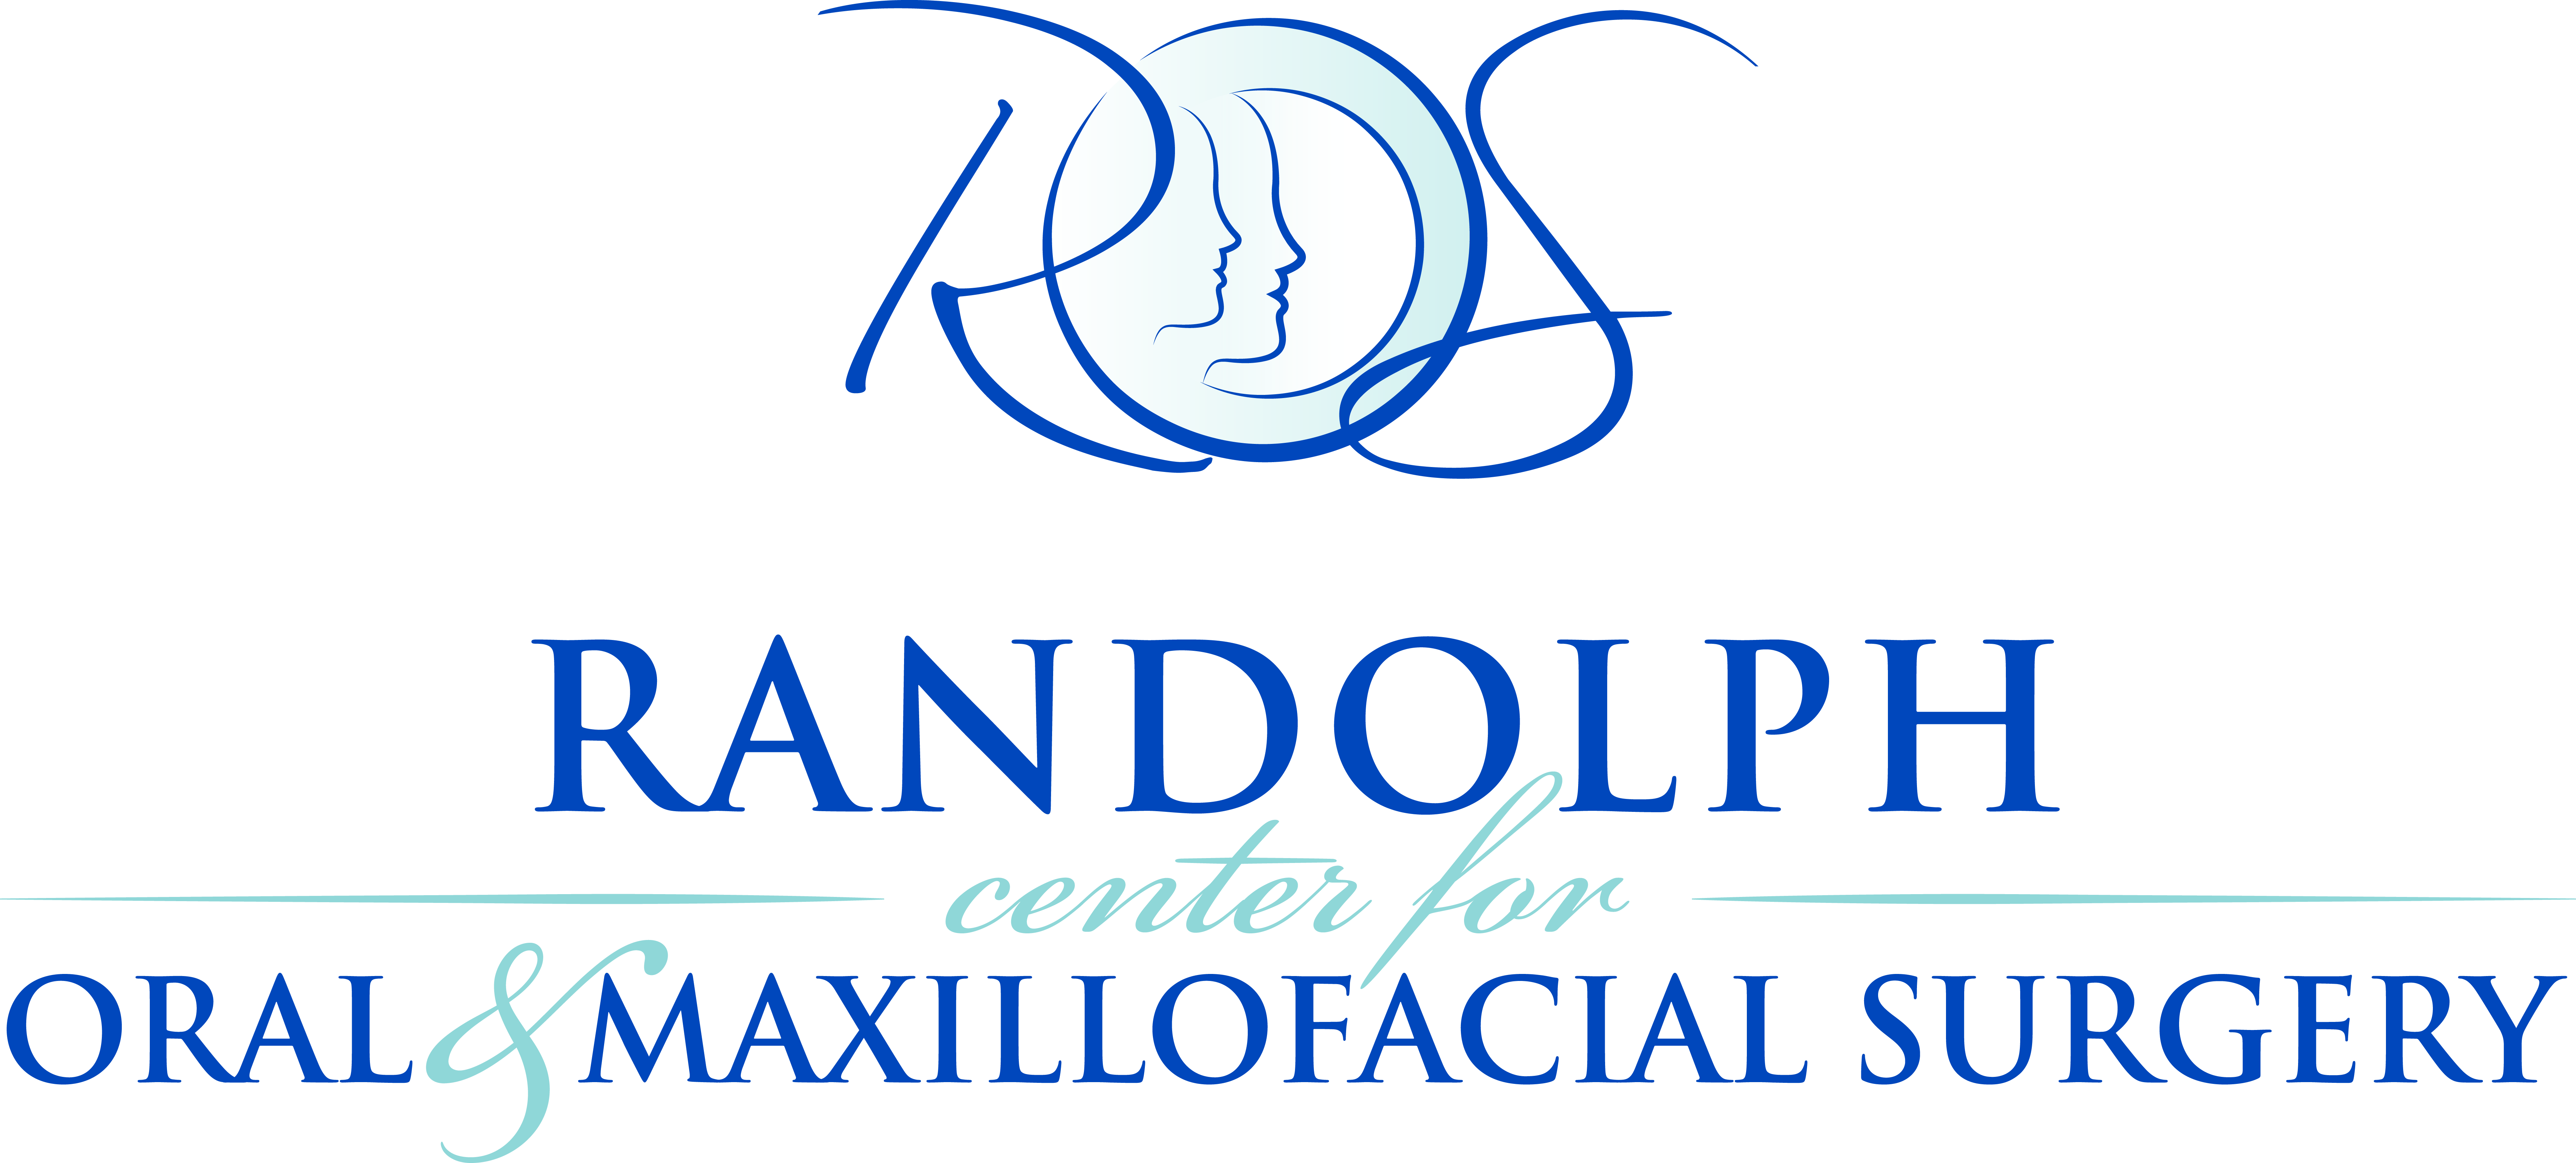 Randolph Center for Oral & Maxillofacial Surgery, PA in Randolph NJ, Flanders NJ, Newton NJ, Hackettstown NJ, Brick NJ, Sparta Township  NJ